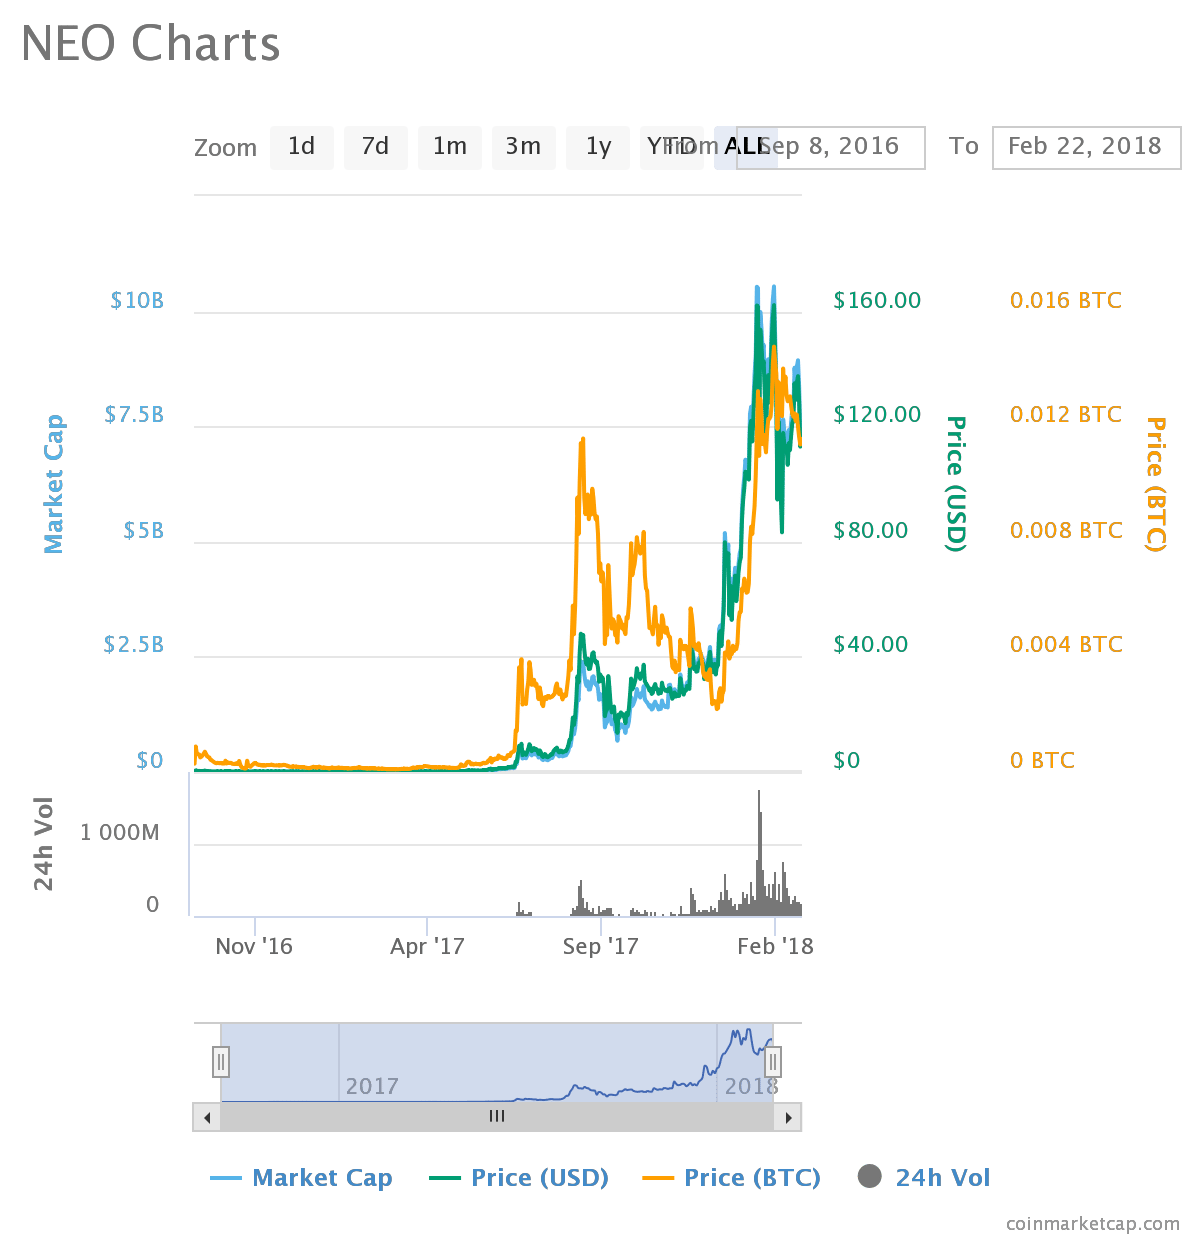 chart1 2 - NEO (NEO) - Prepping for All Time Highs